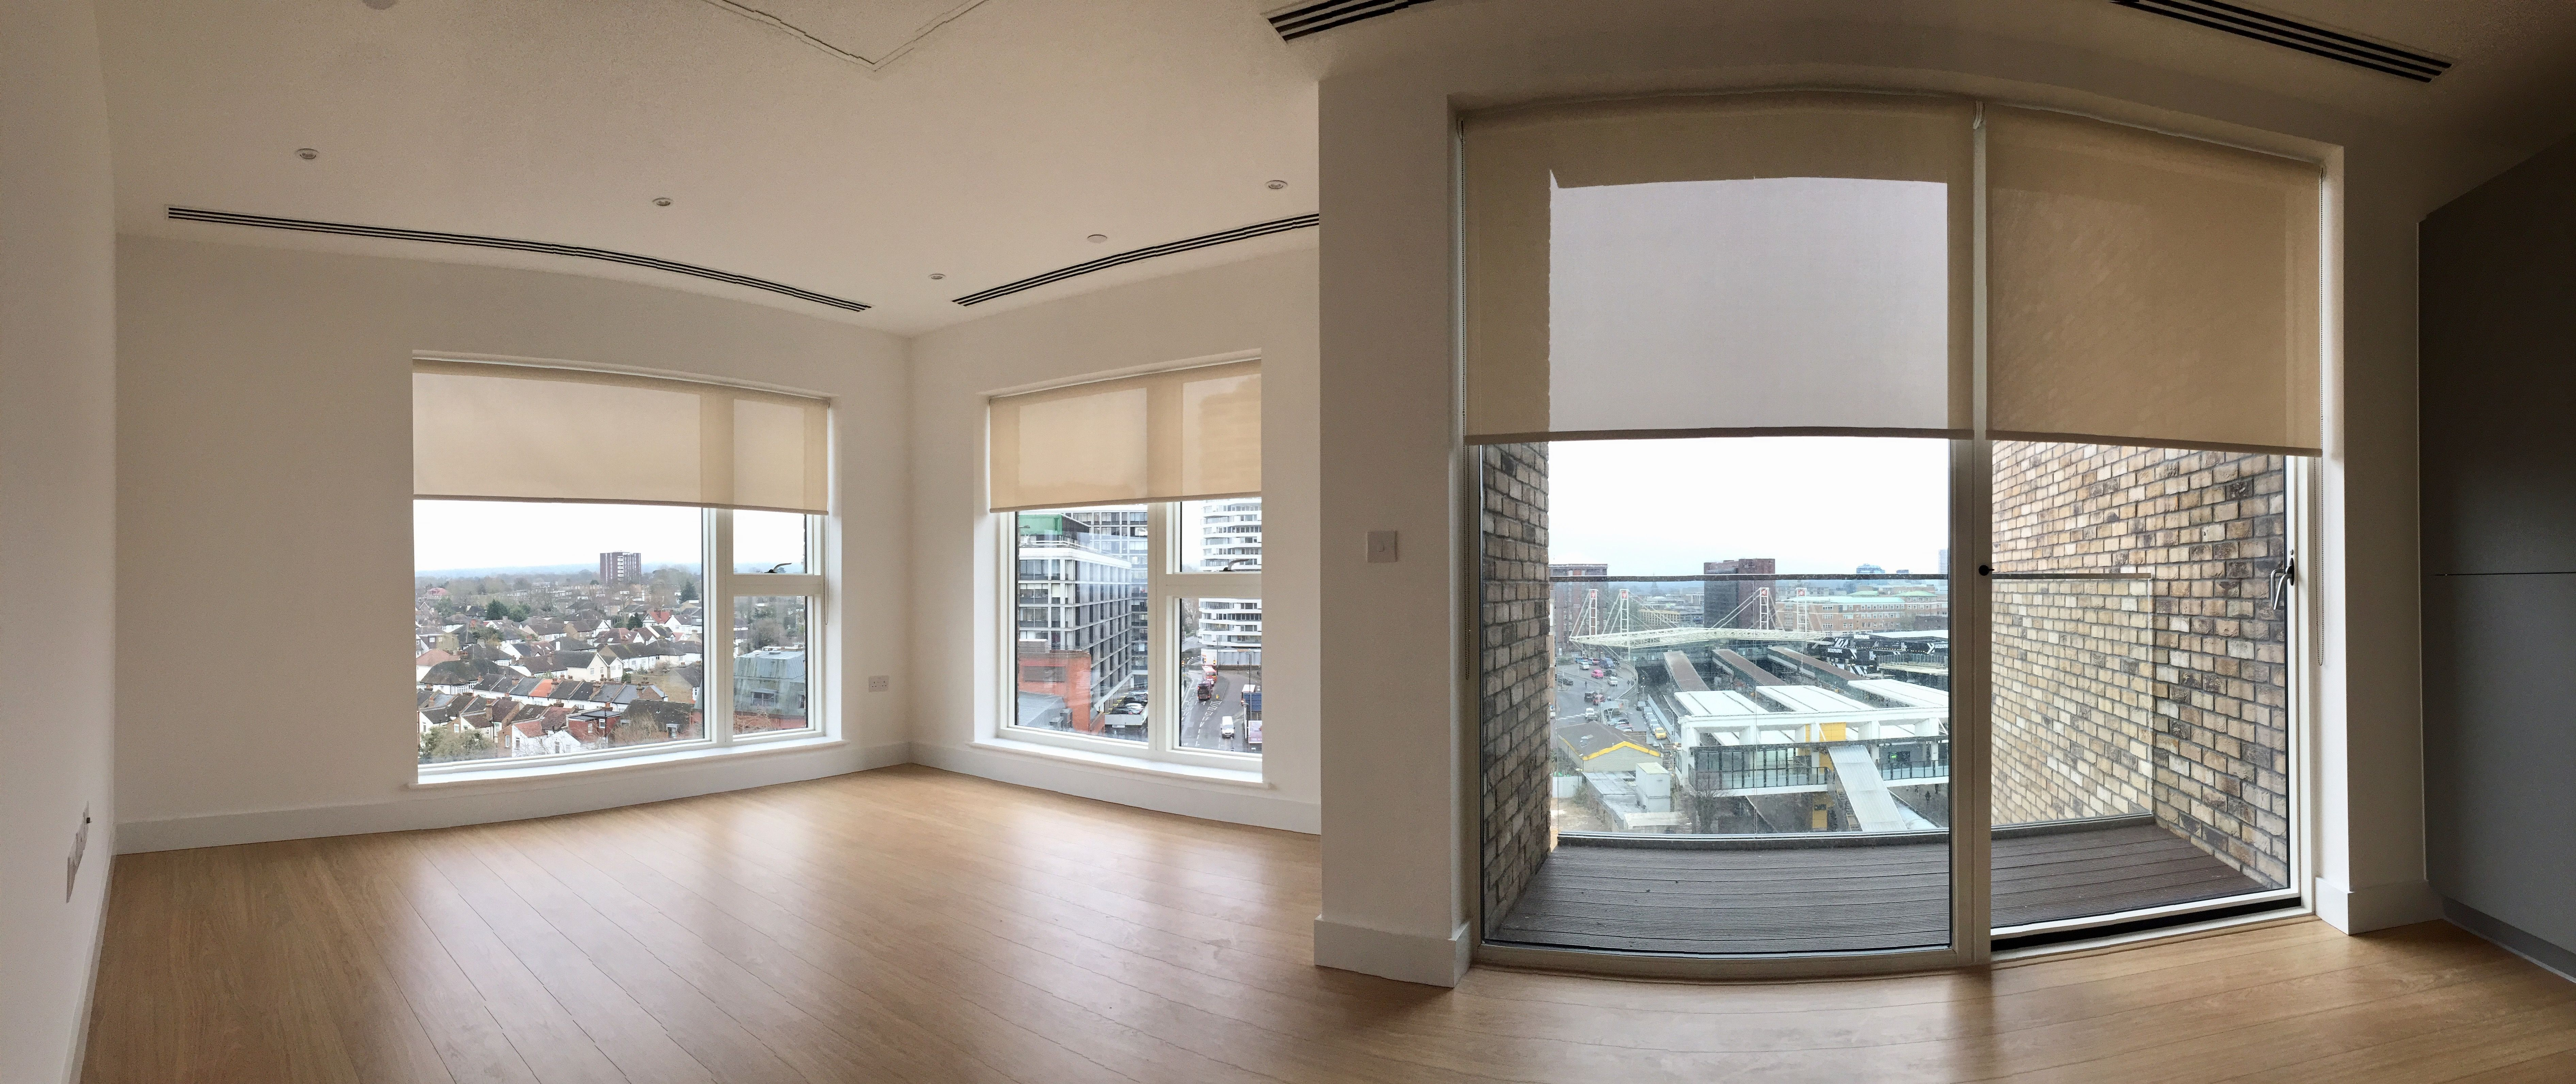 Sunscreen roller blinds installed to new apartment in morello